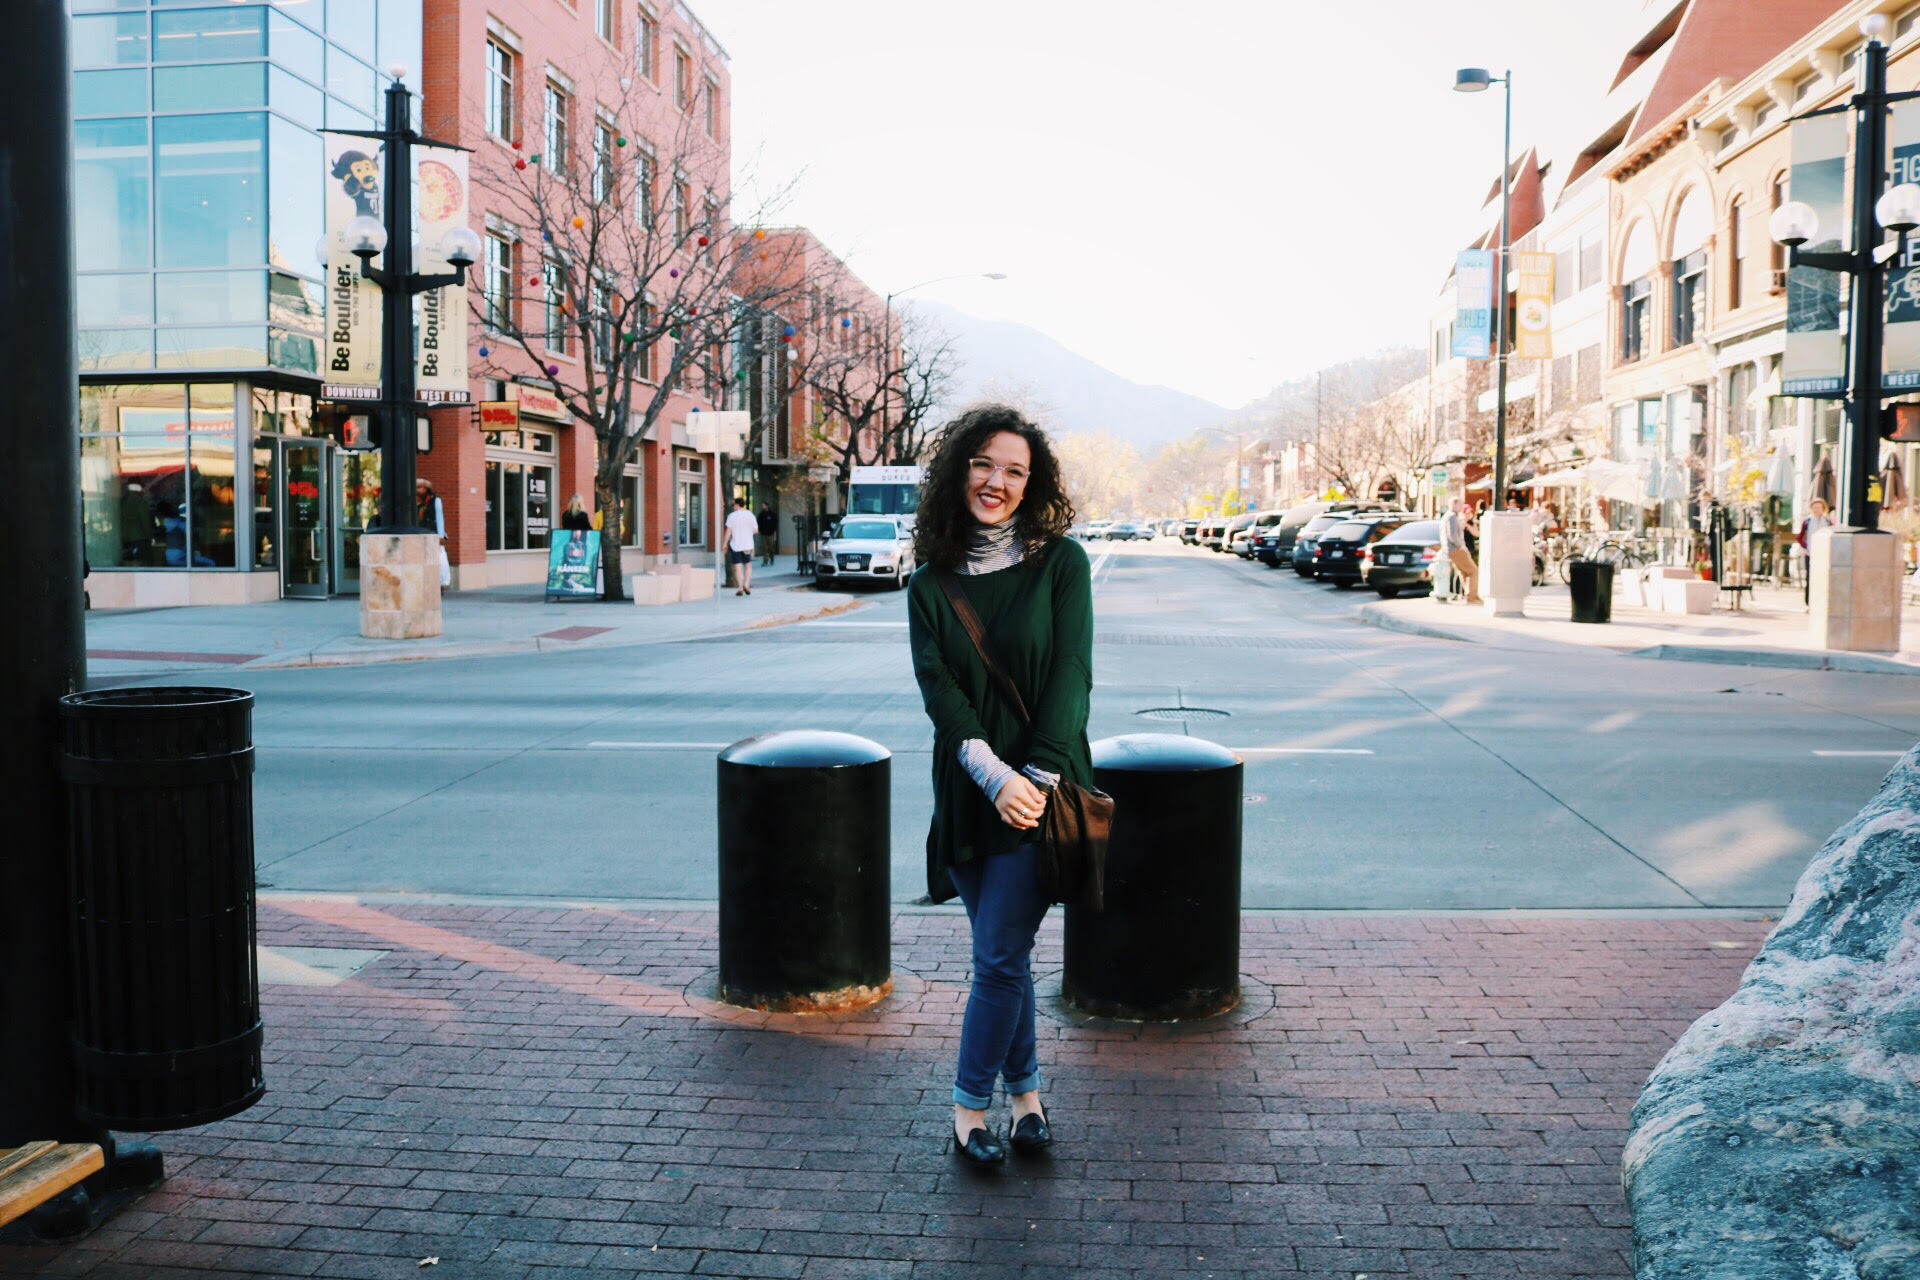 Katie hails from the city of Cincinnati, OH! She is the full-time business owner of Hosanna Revival, a hand-painted Bible company that has now become so much more!